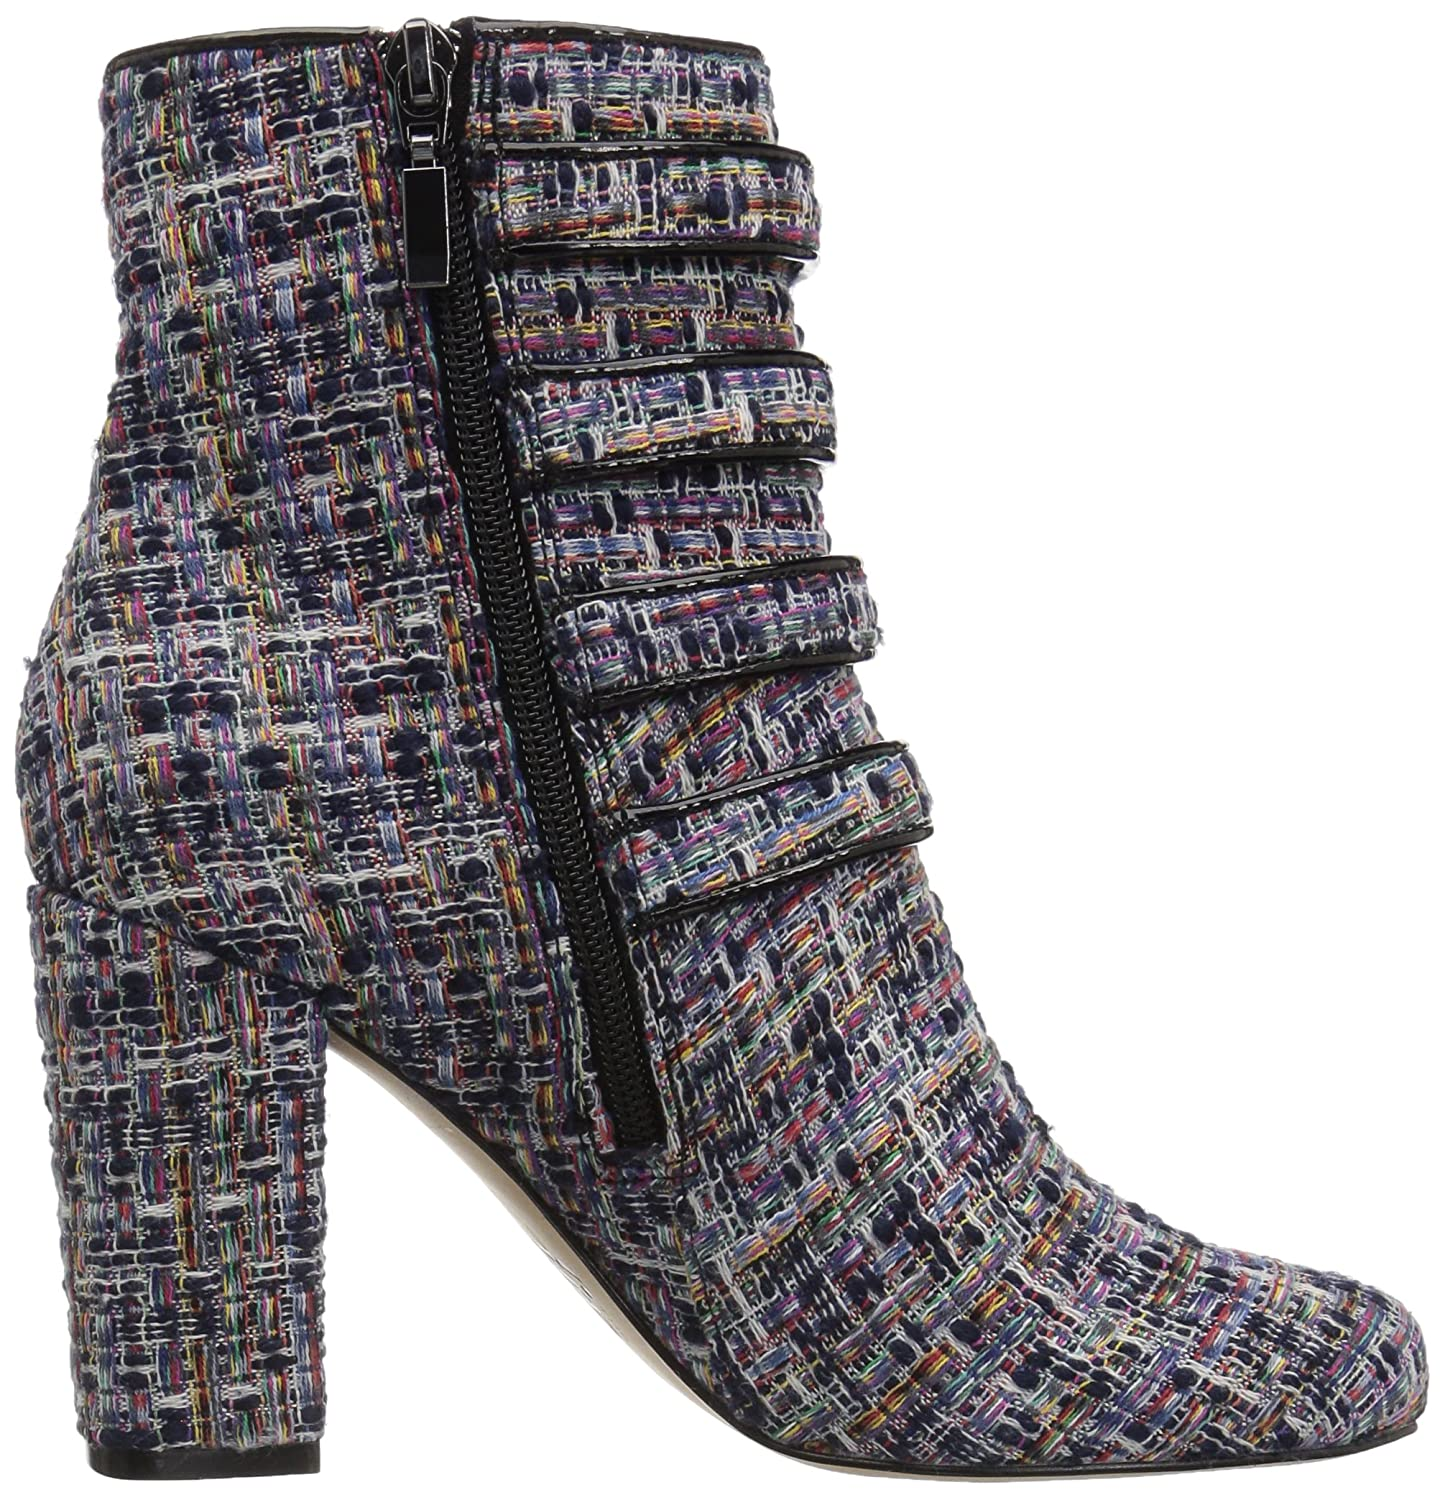 The Fix Women's Sadie Military Style 4 Strap Jewel Buttons Ankle Boot B074LVXTWQ 7 B(M) US|Black Multi Tweed Textile